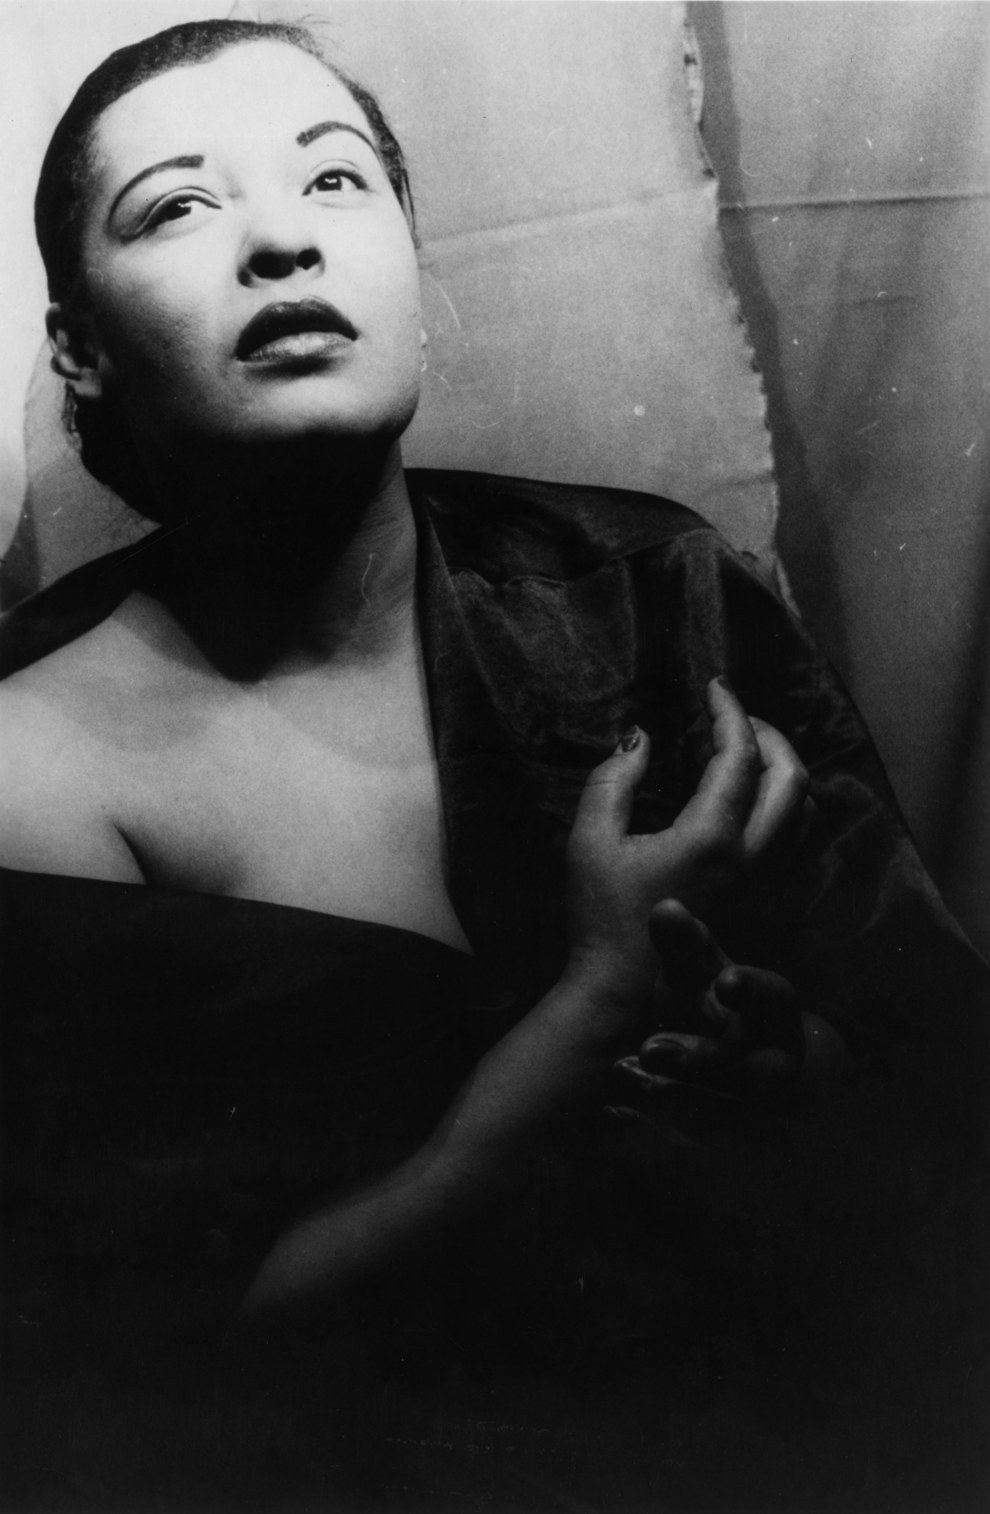 Billie Holiday (data desconhecida)